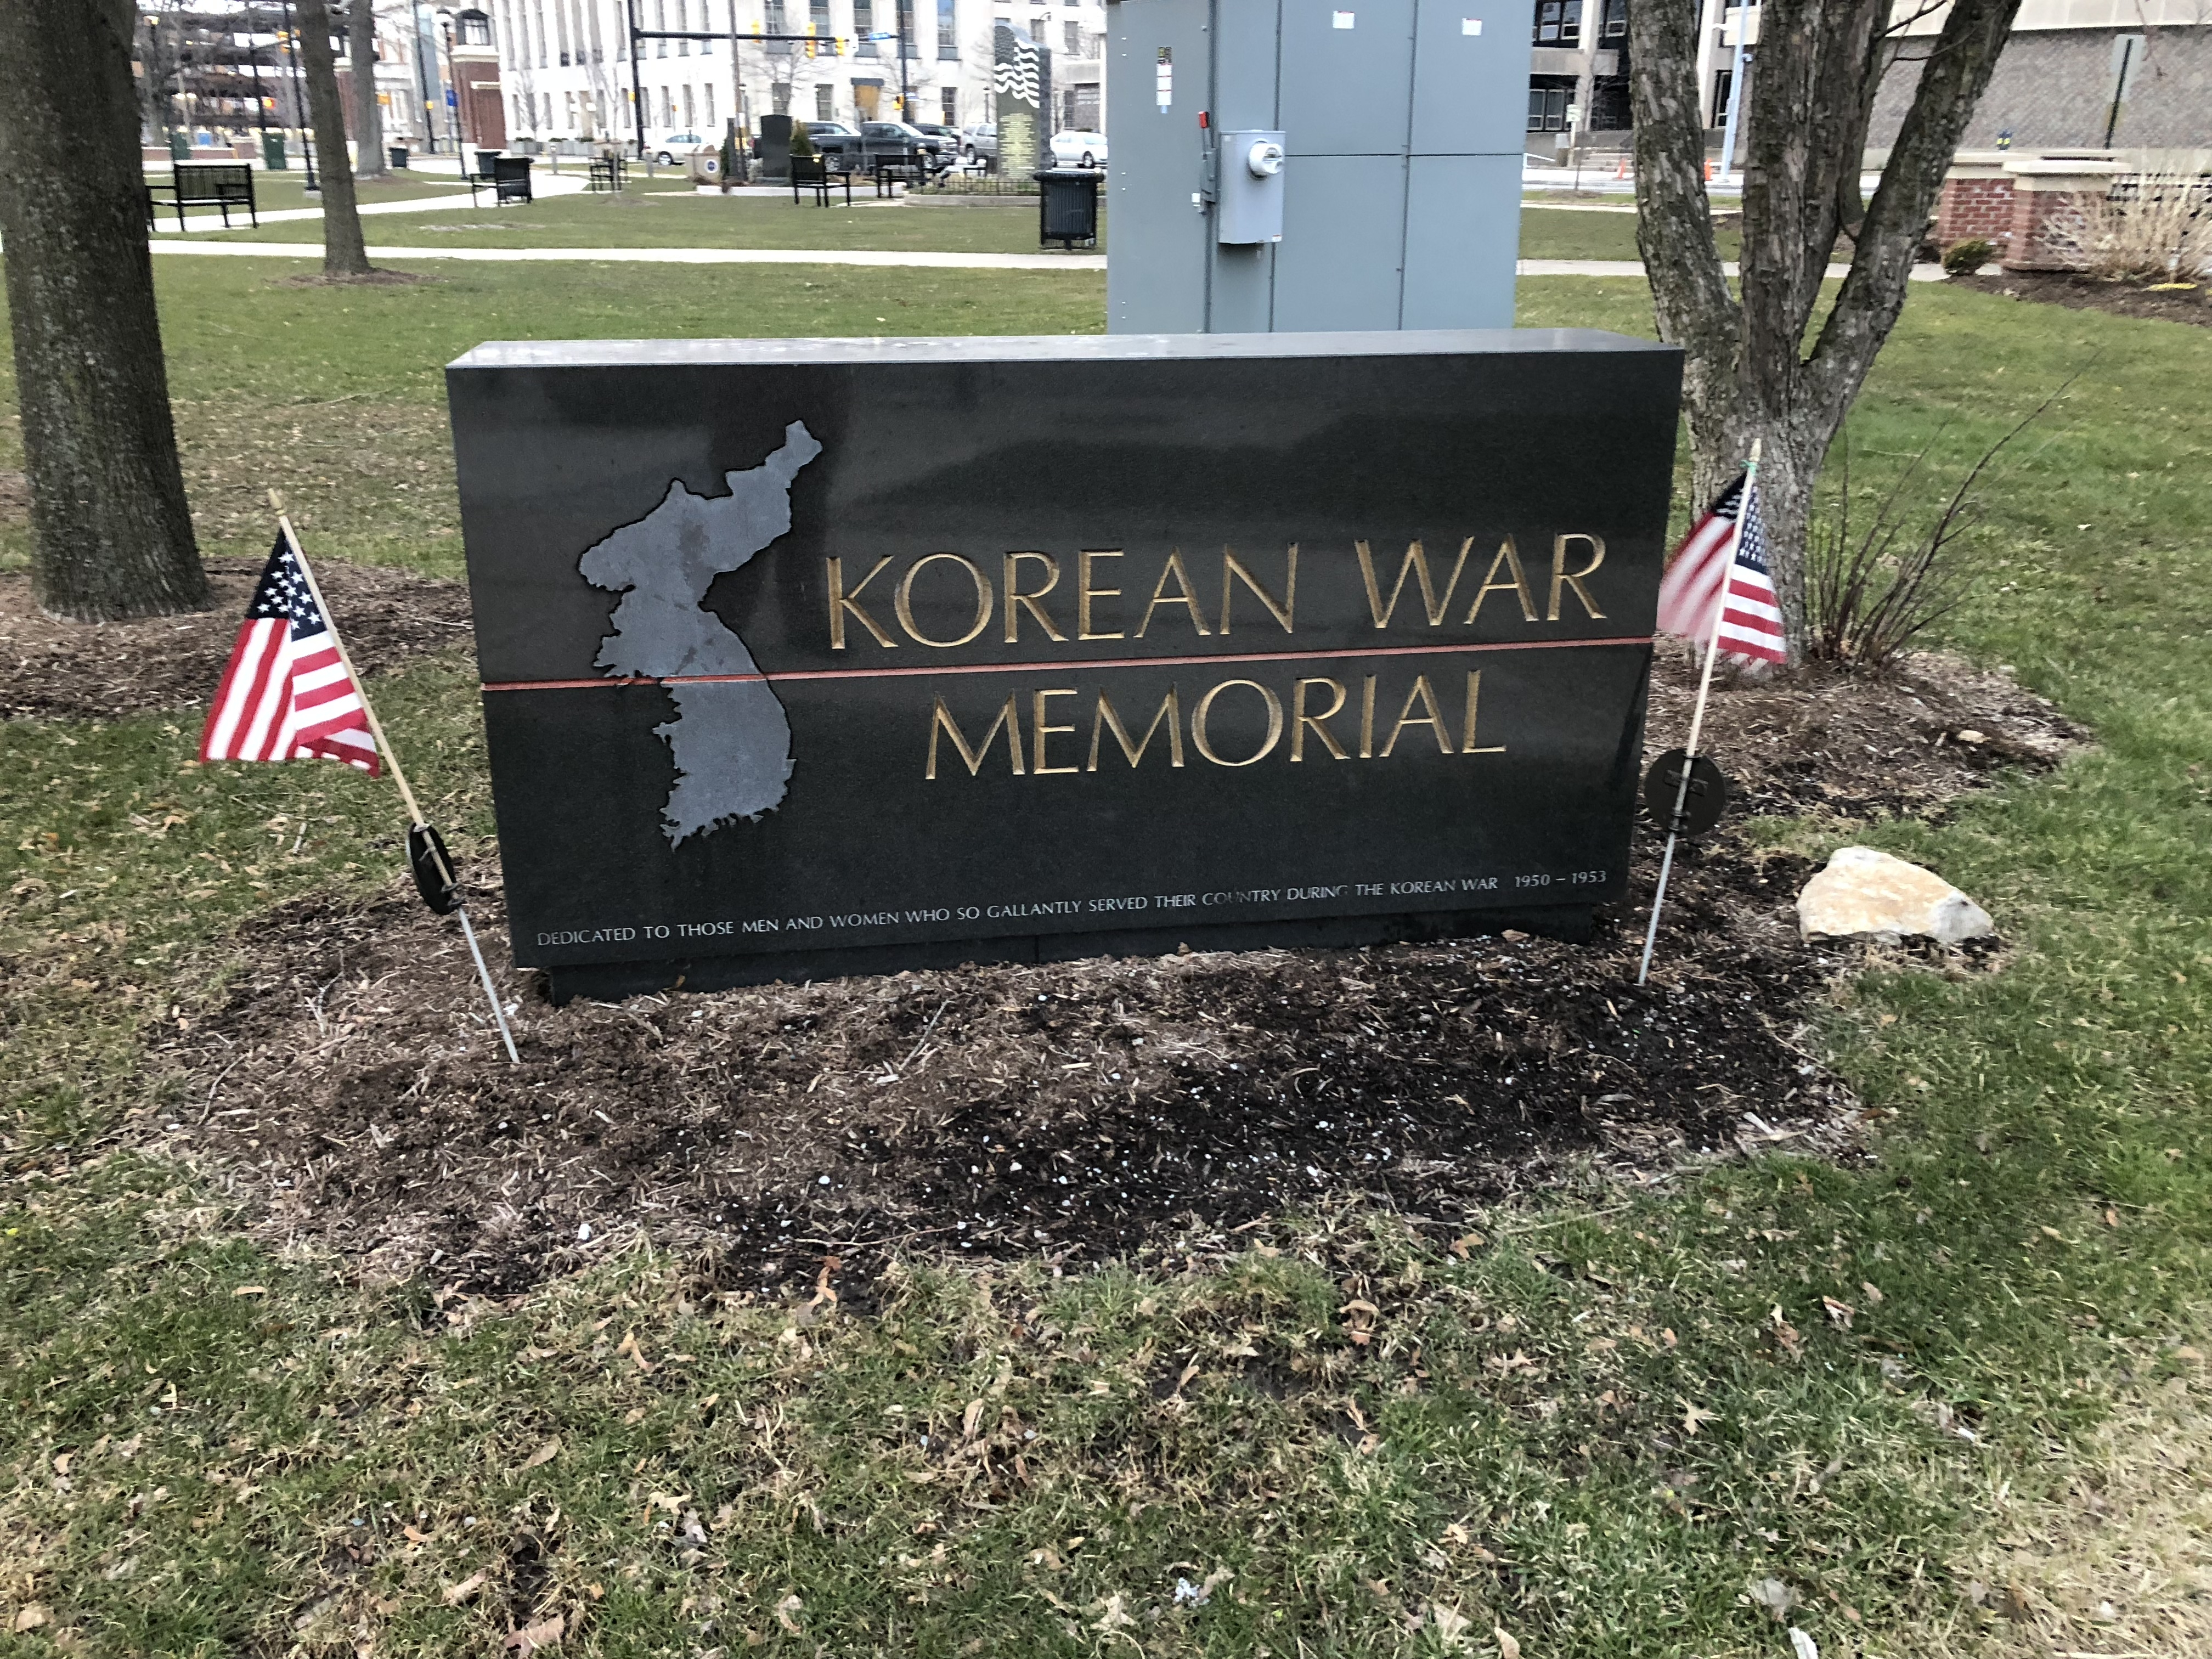 Korean War Memorial Marker